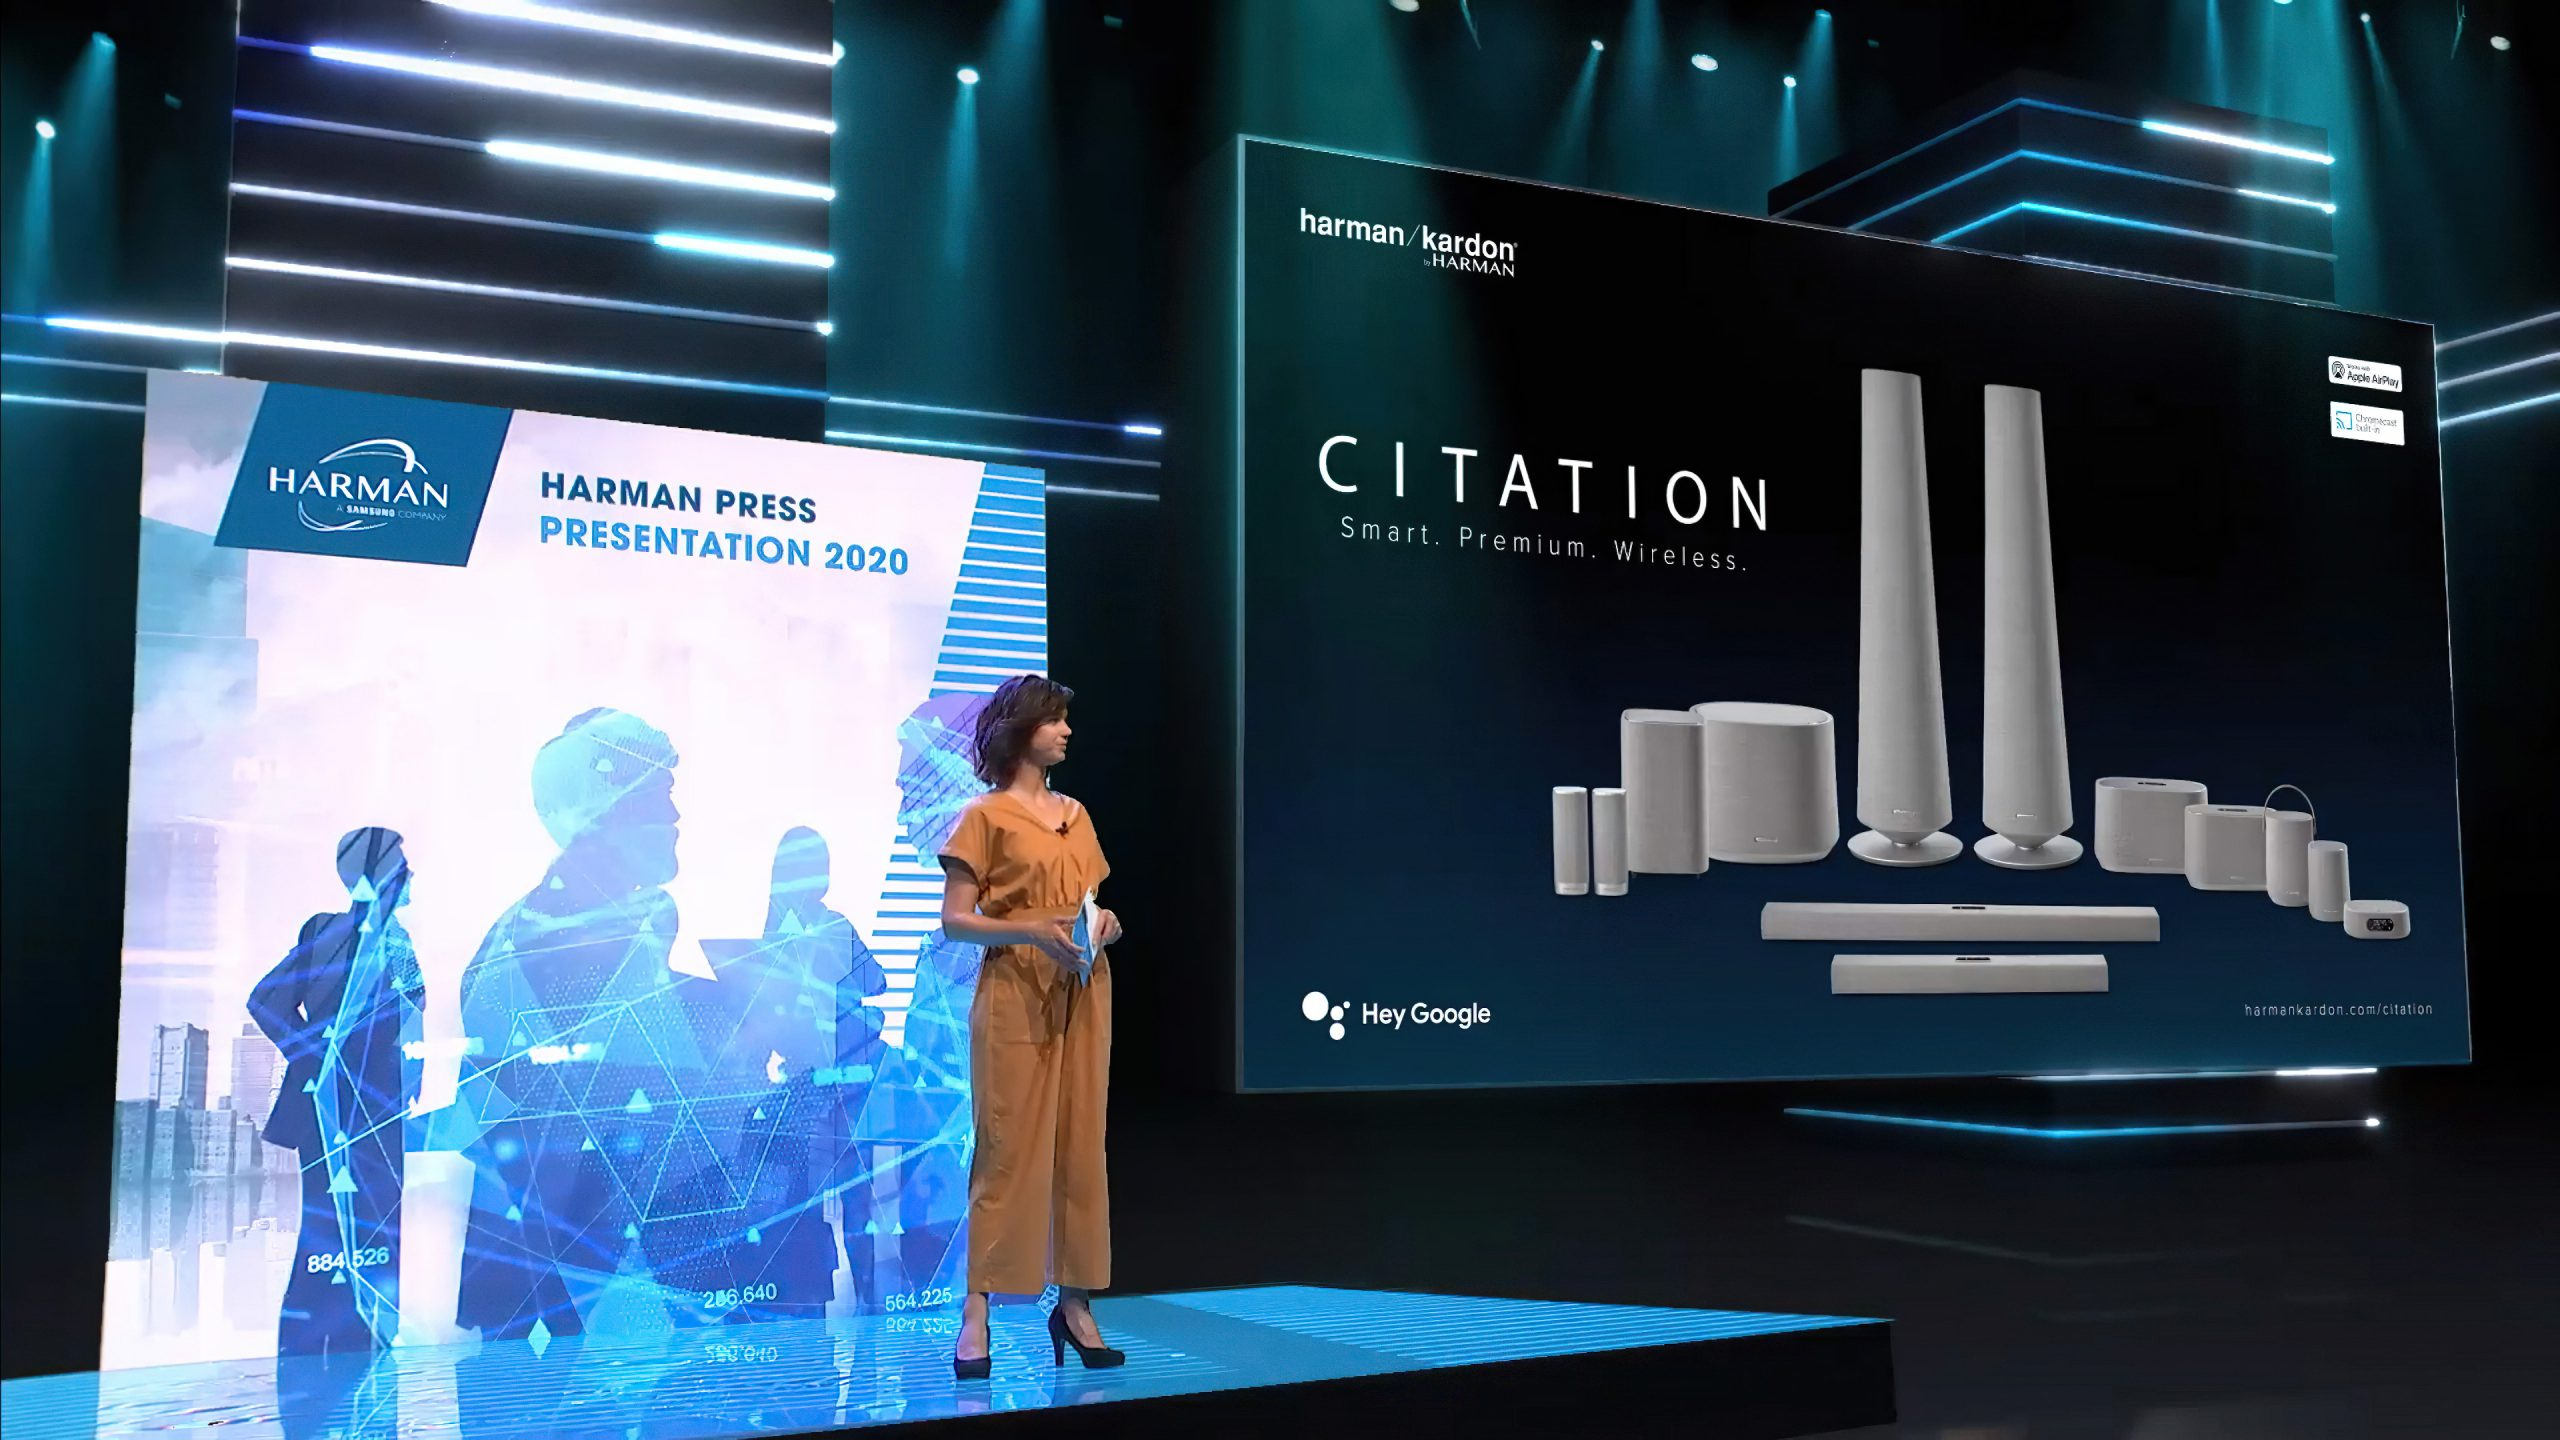 Harman Citation 200 IFA 2020